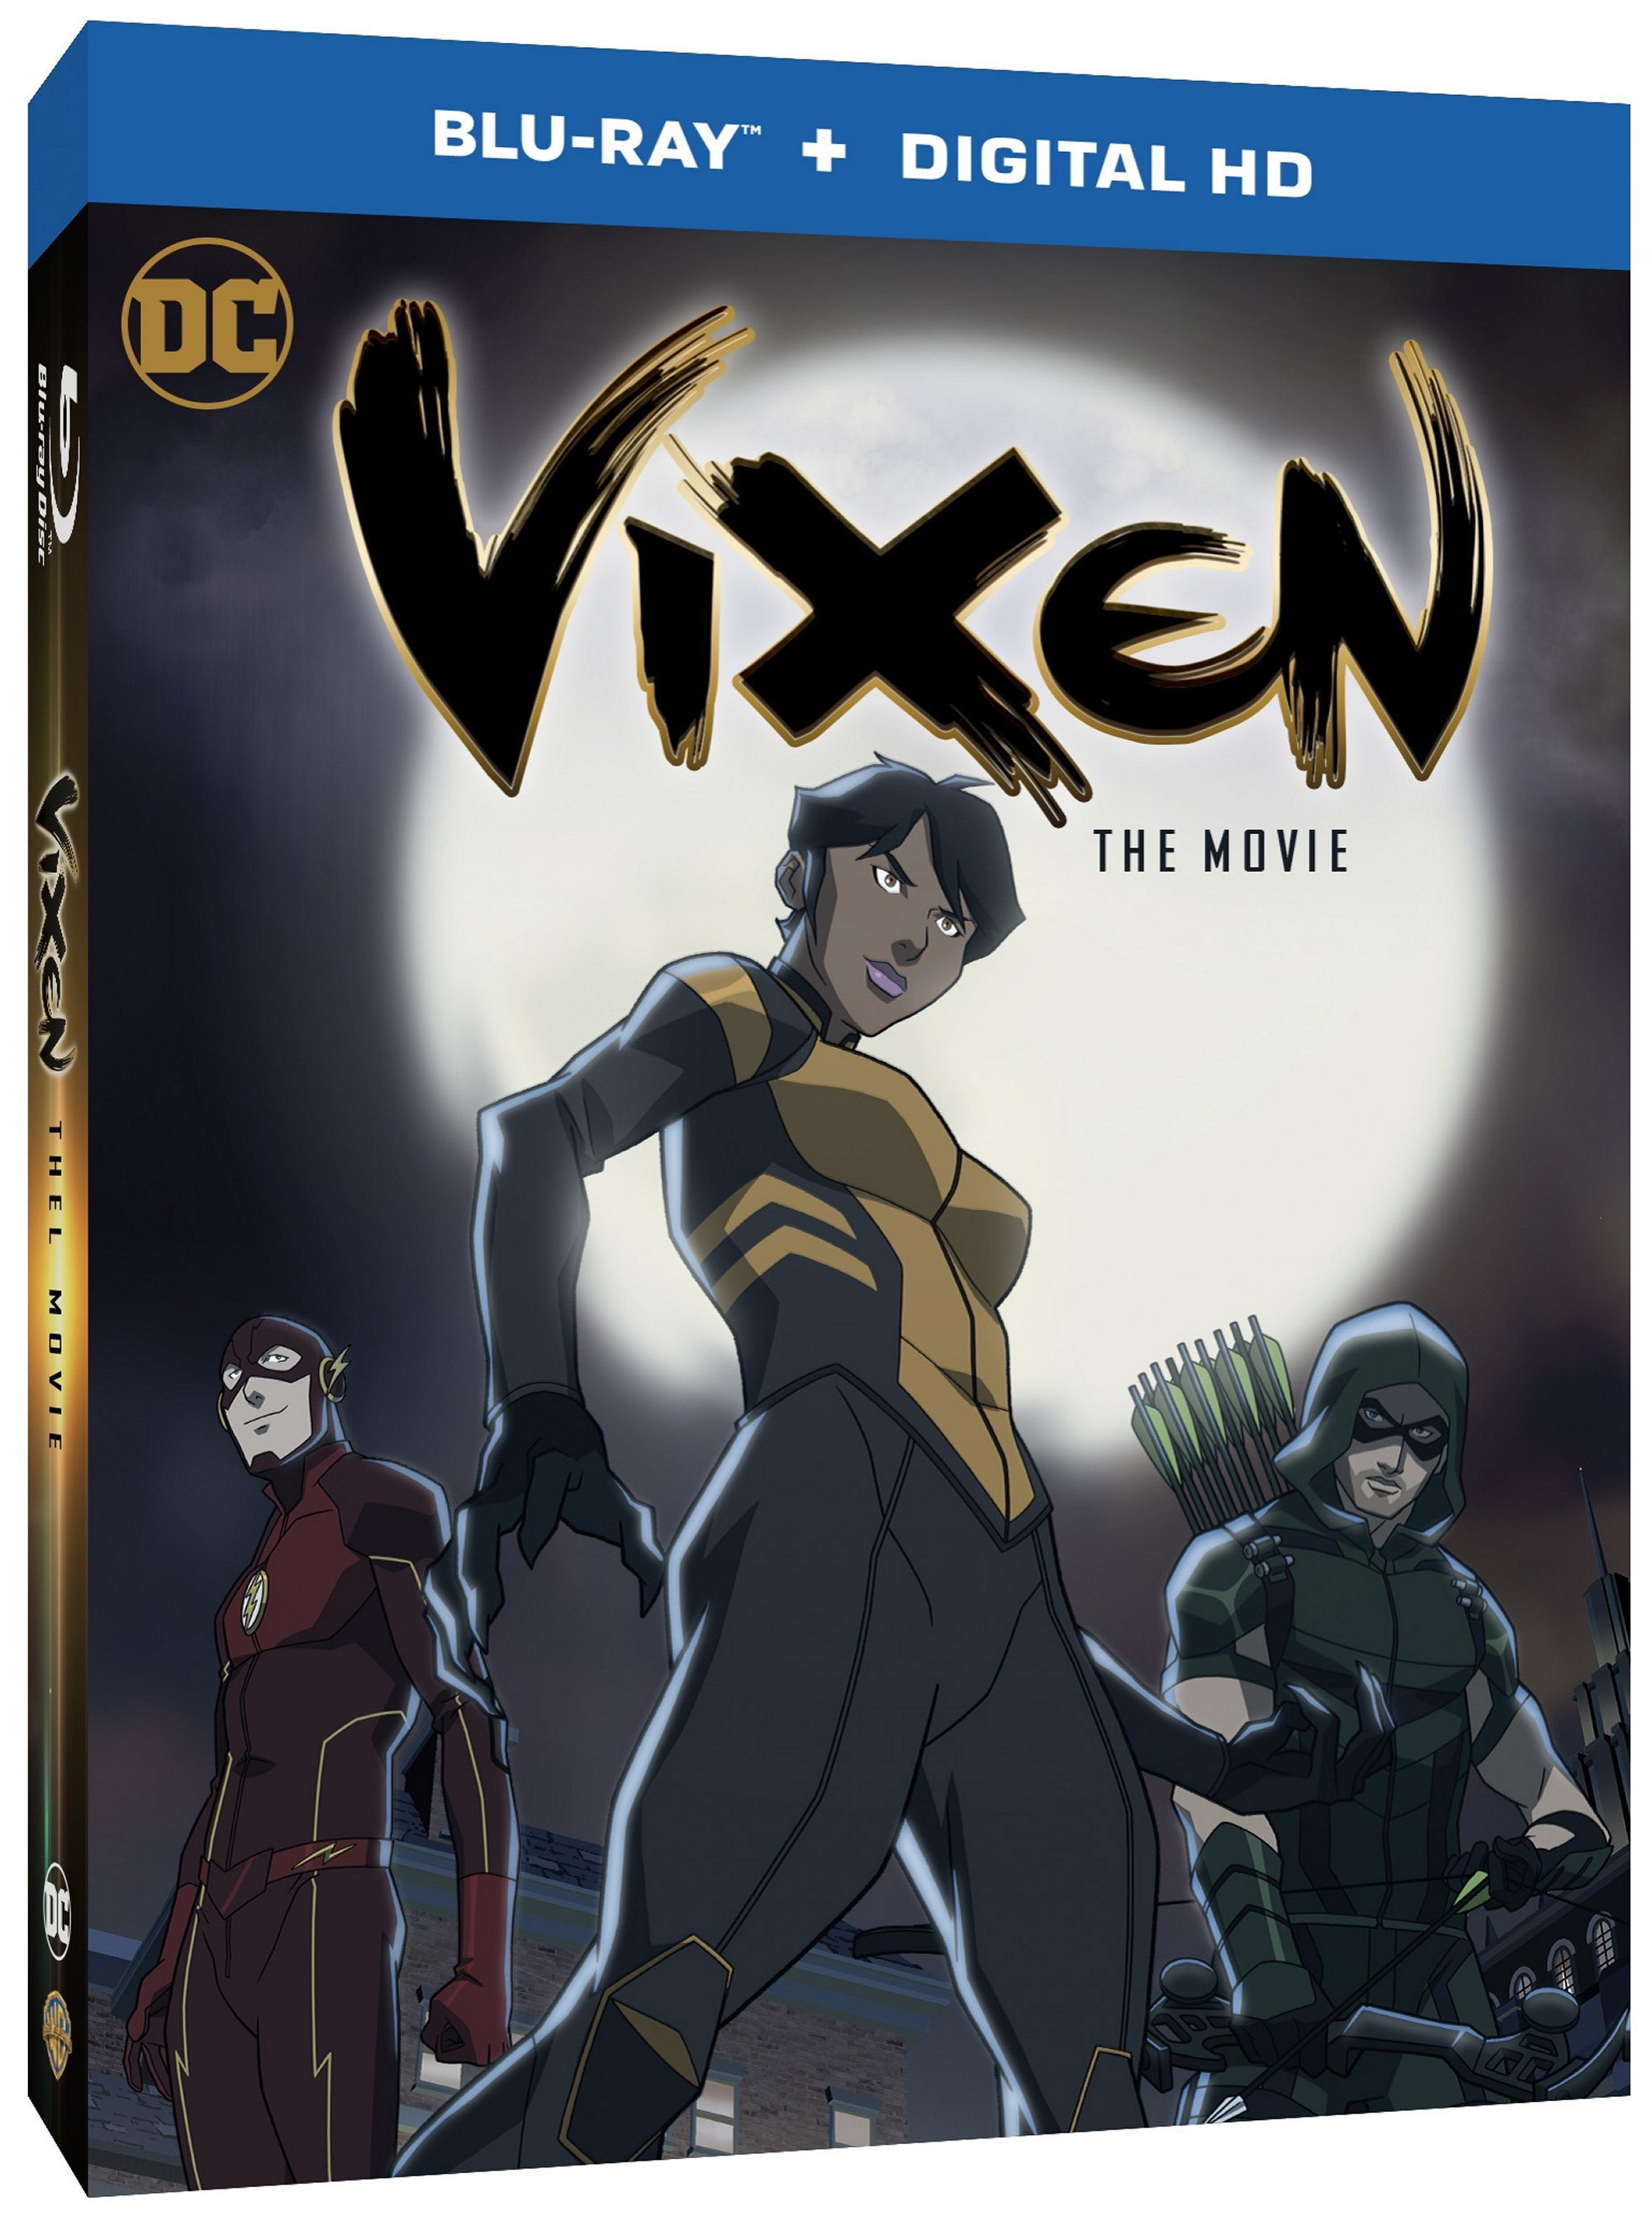 Vixen: The Movie Blu-Ray Cover Art And Release Date Revealed